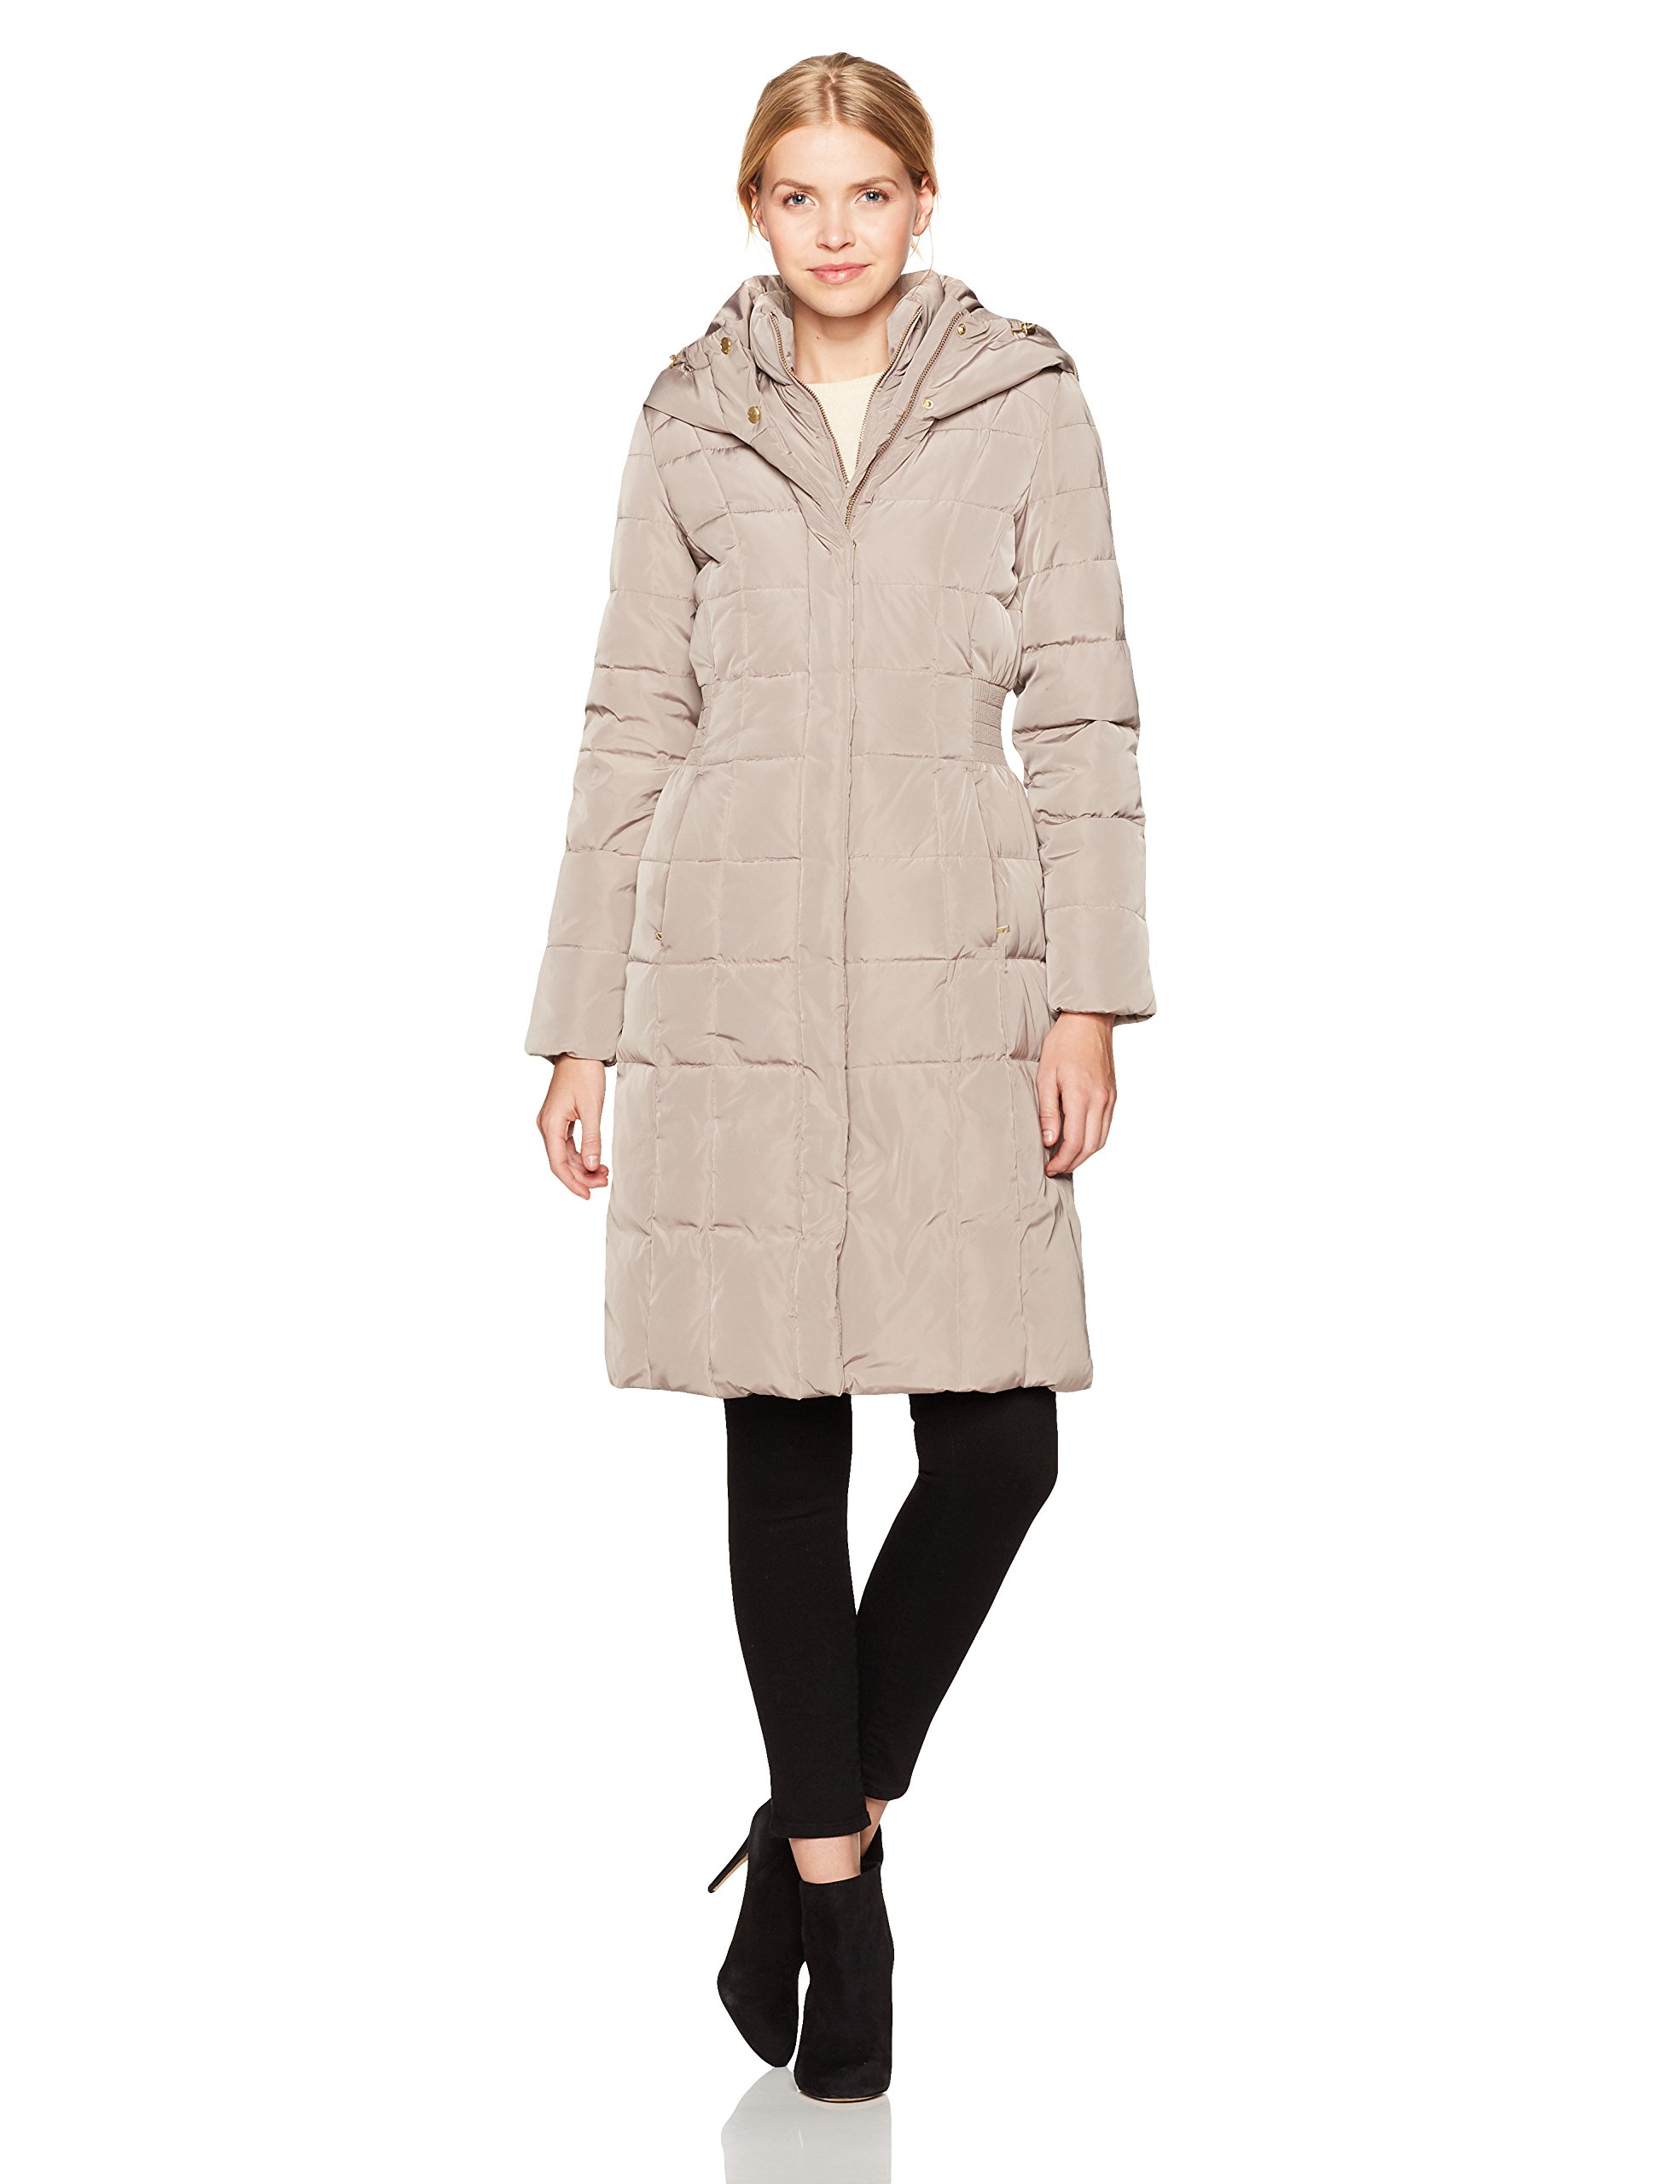 Cole Haan Women's Taffeta Quilted Down Coat with Elasticated Side Waist Detail, Cashew, M by Cole Haan